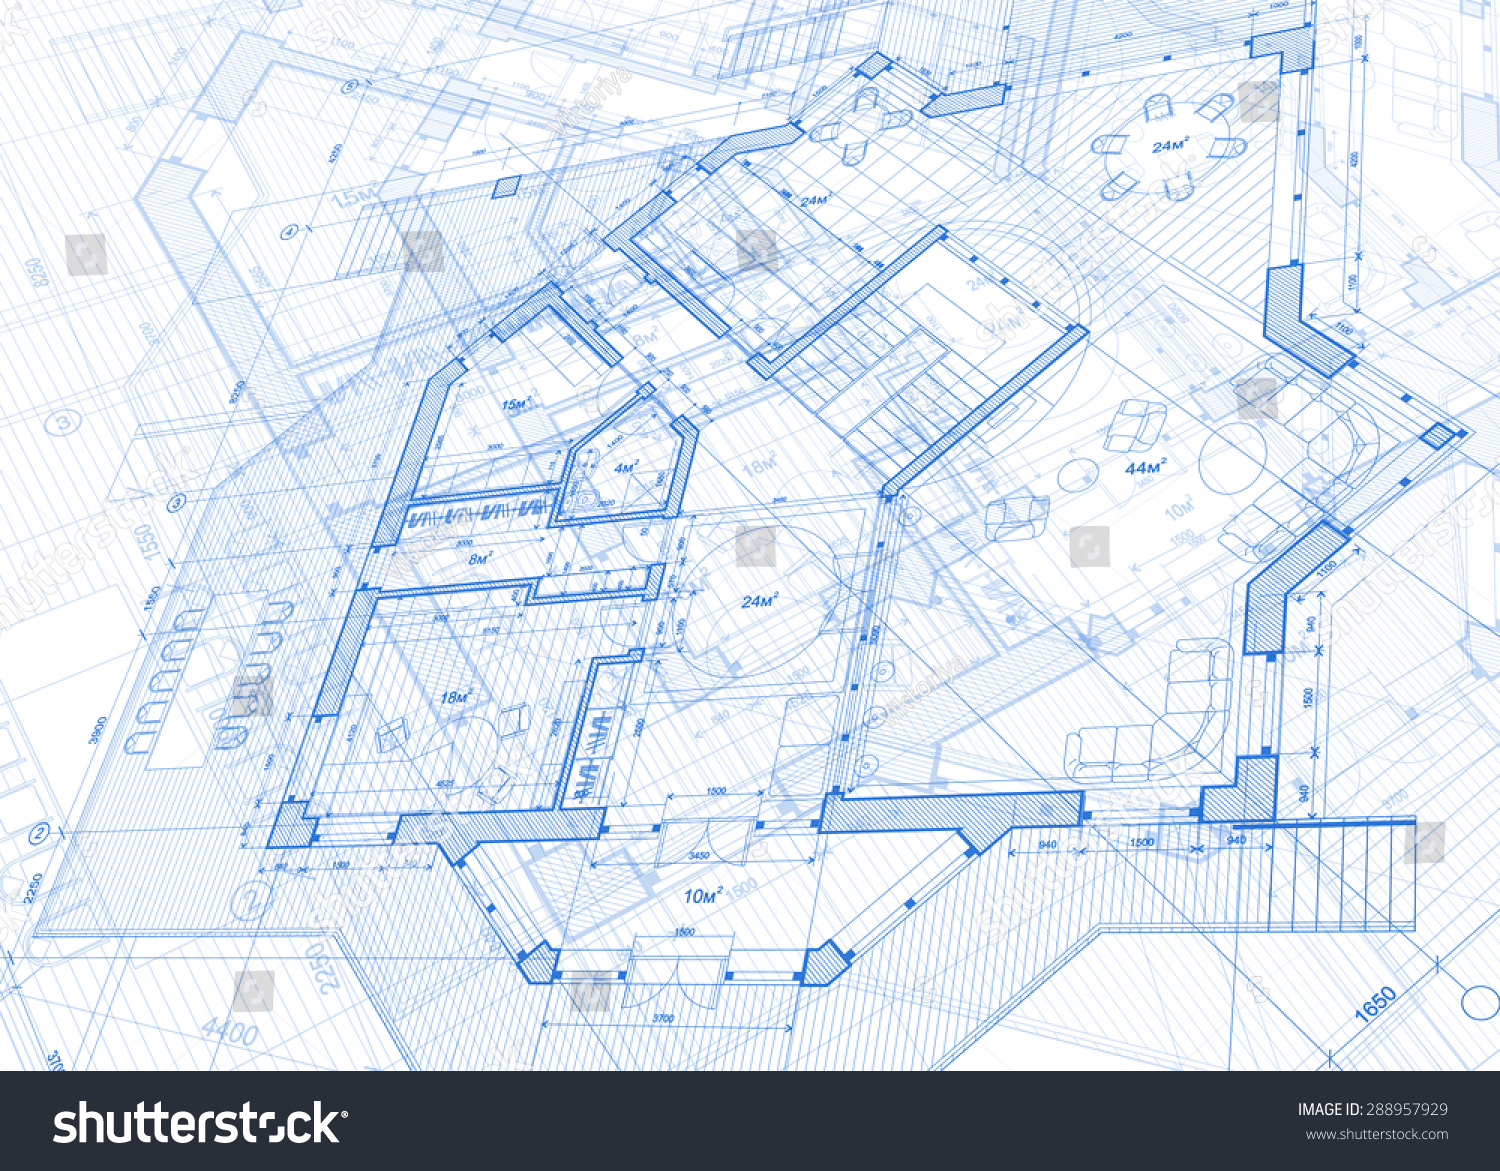 How To Get Blueprints Of My House Online 91 Architecture And Design Blueprint Table Of World